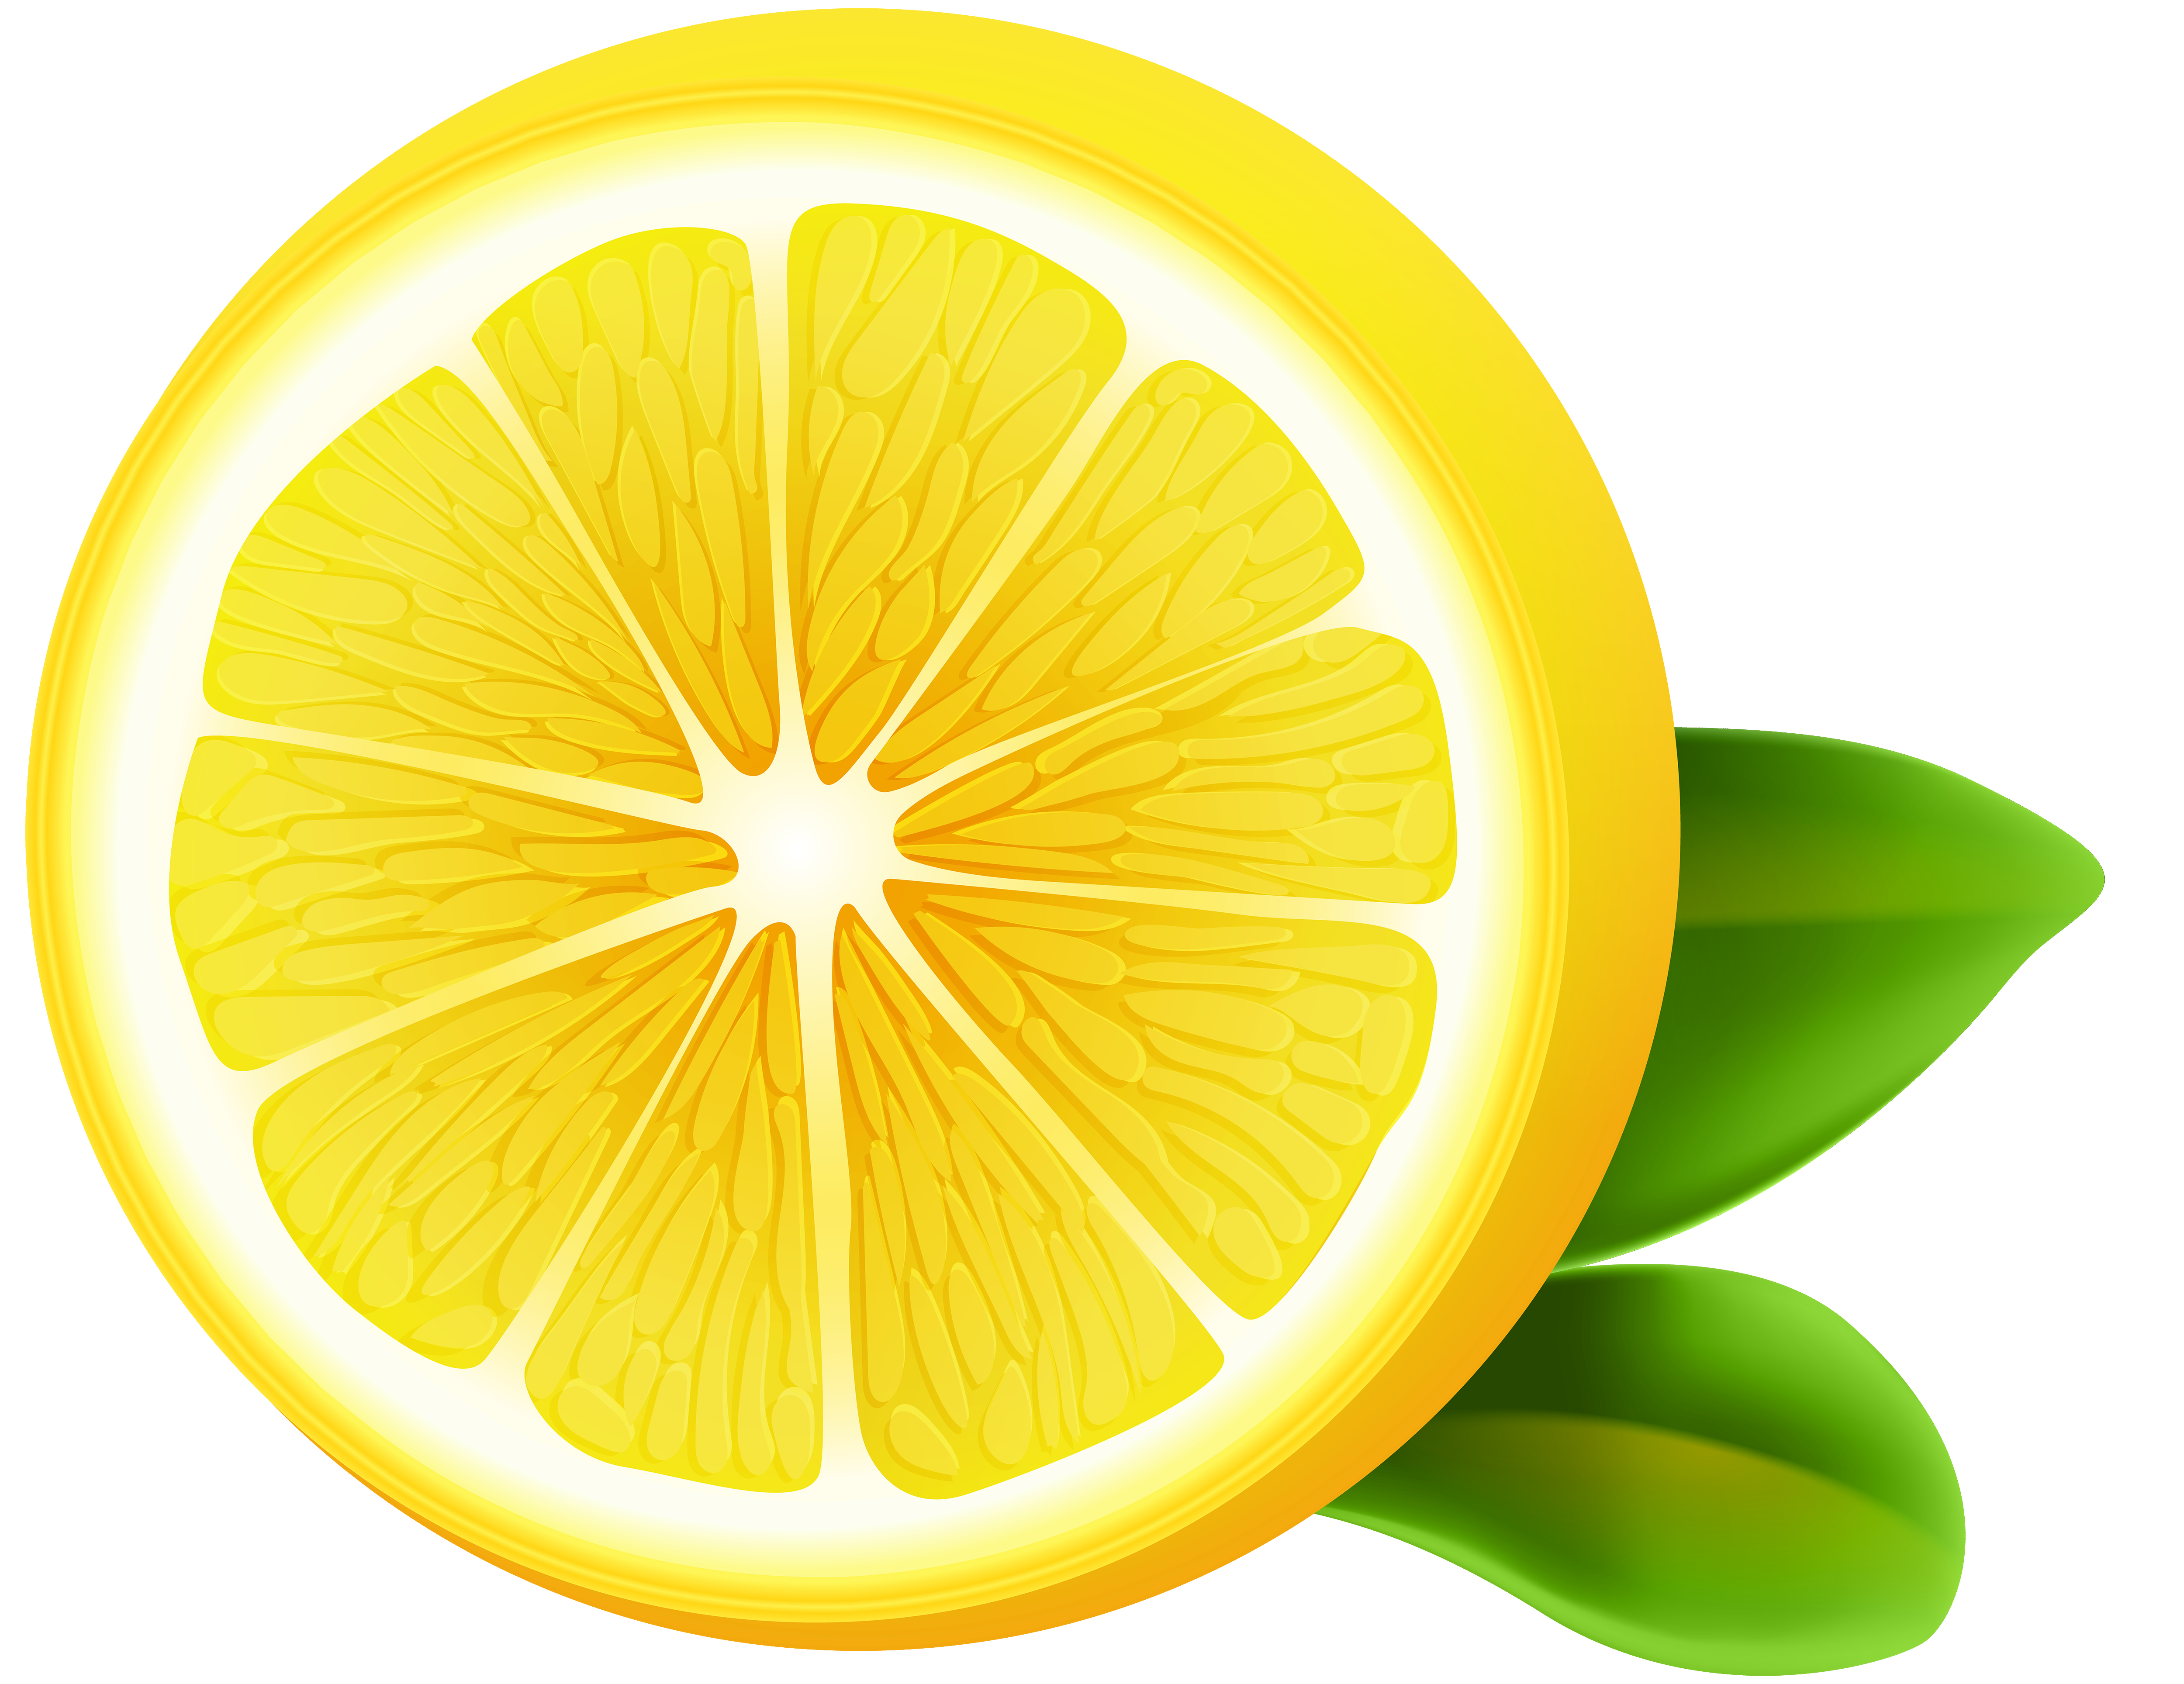 lemon clipart transparent pencil and color lemon #13367